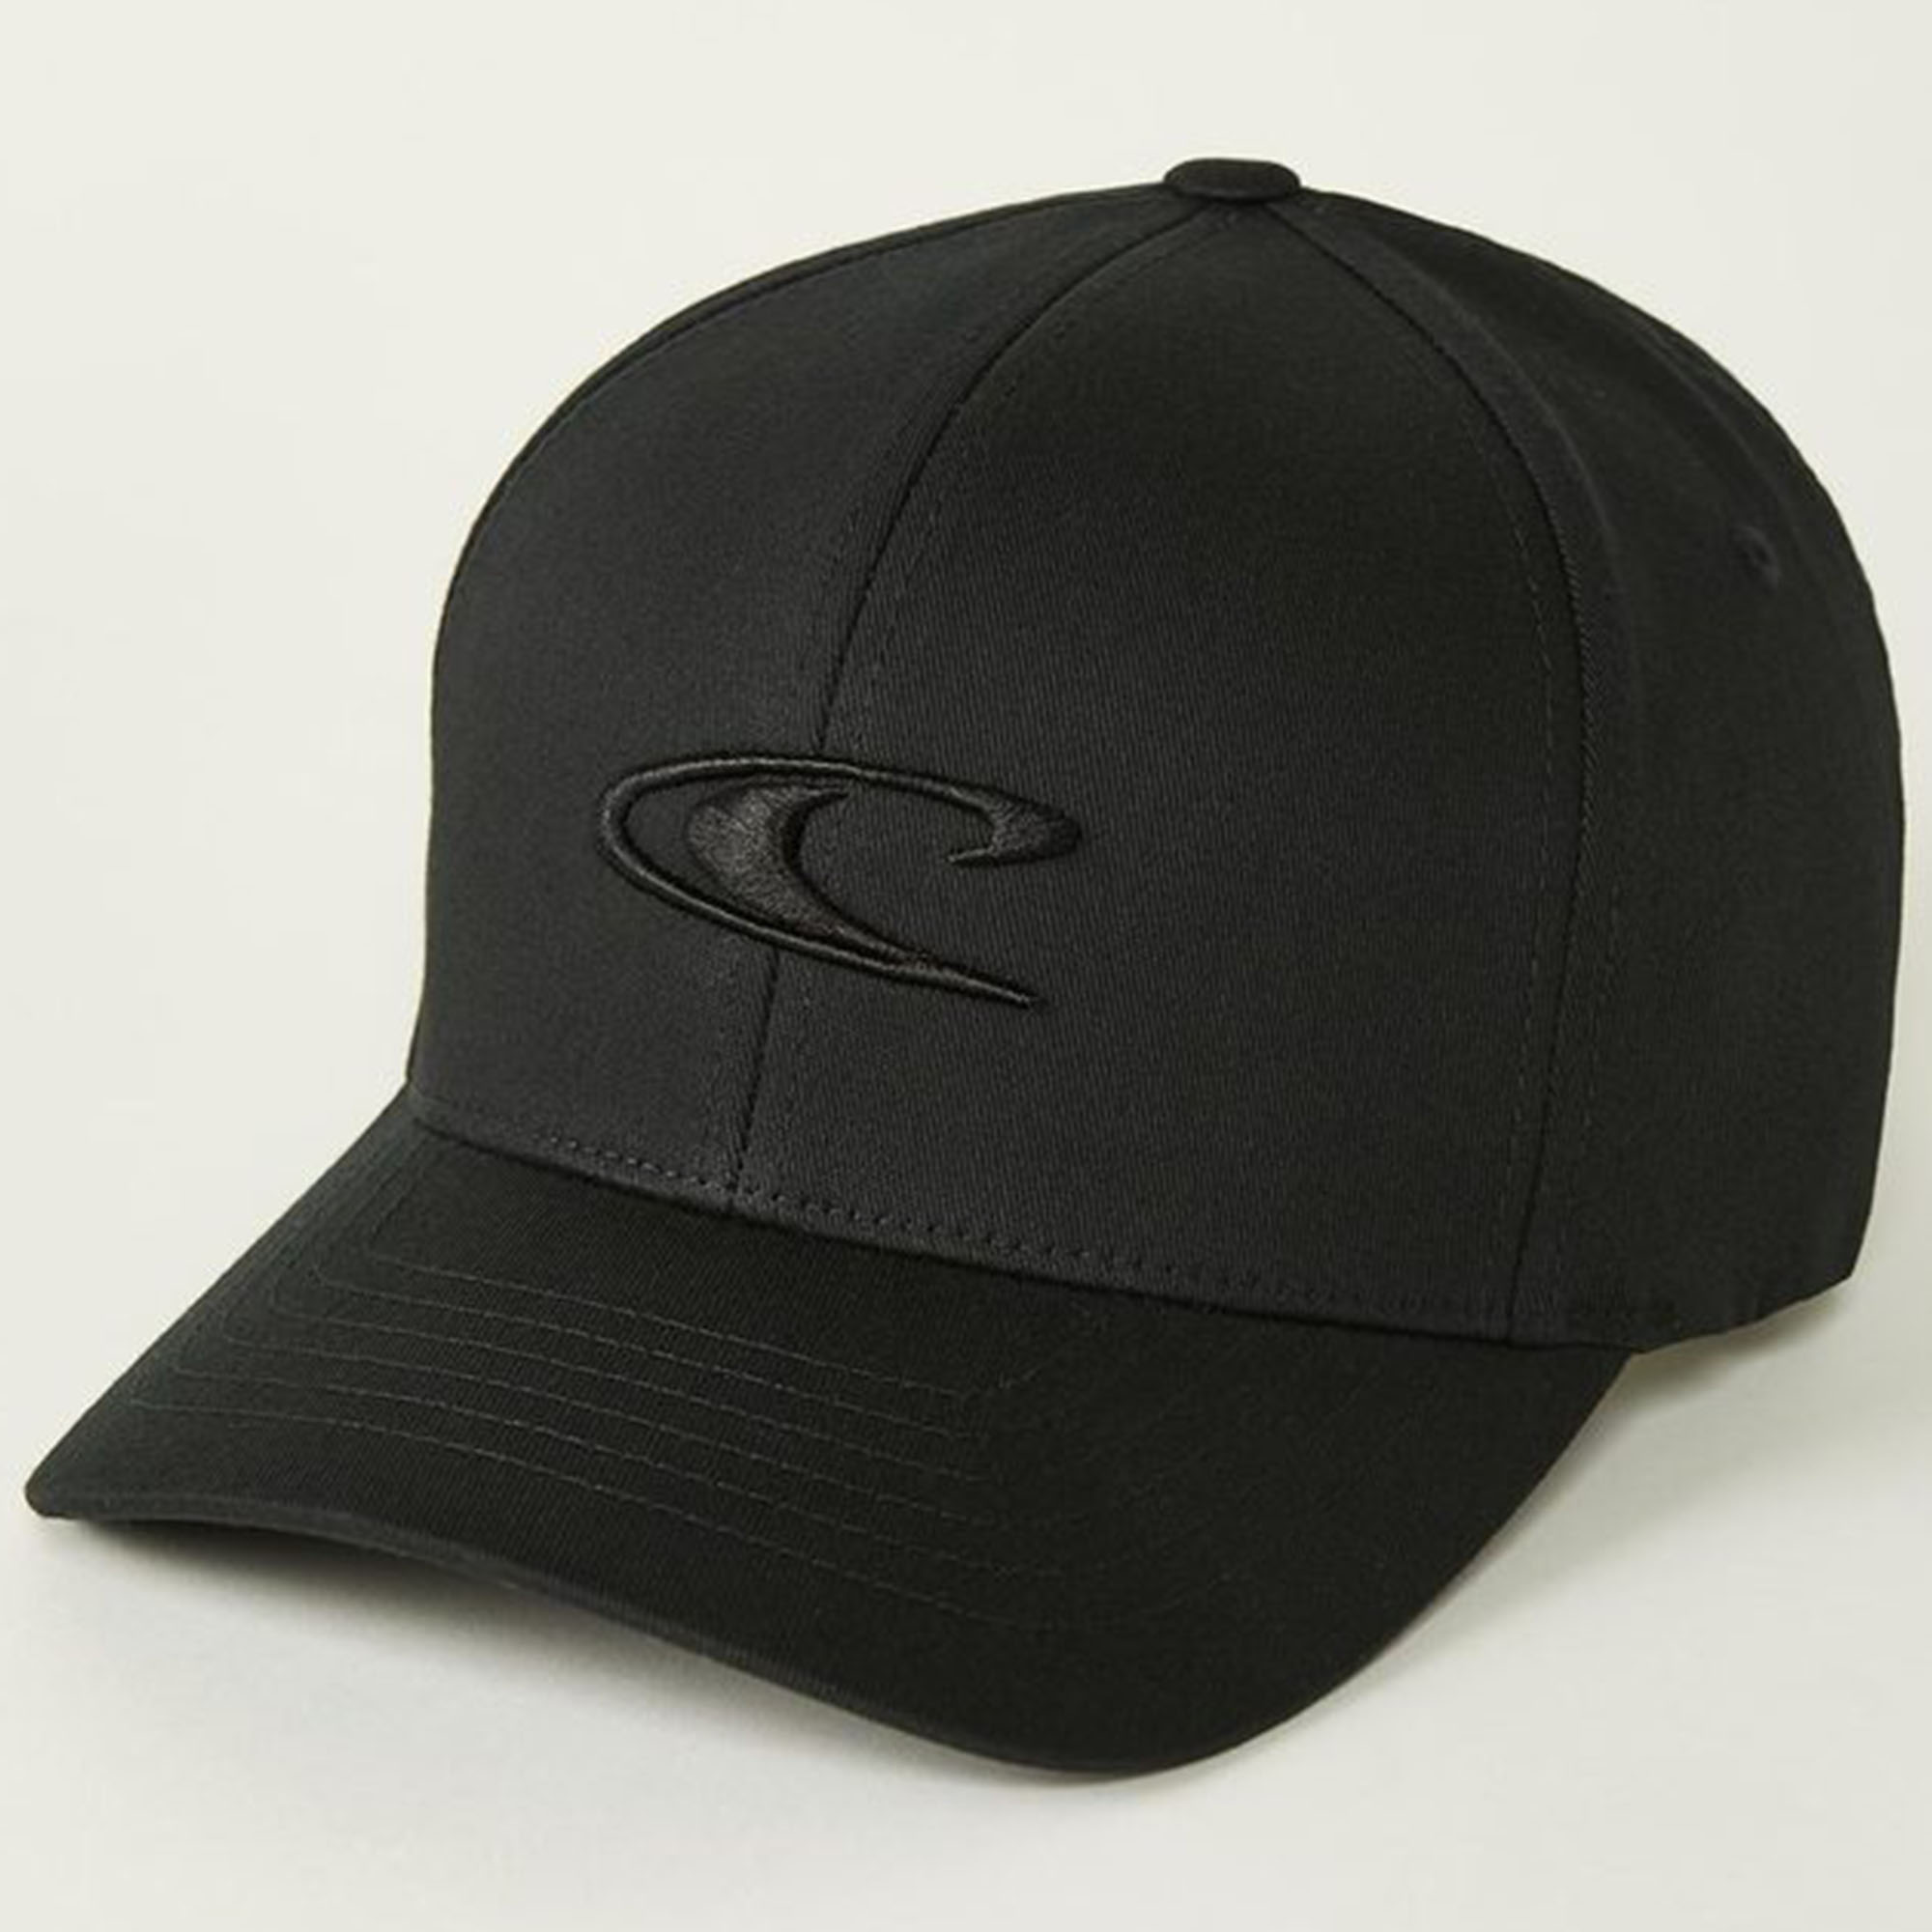 ONEILL STACKED CAP Truffle Red Oneill Men/'s Accessories Casual Hats